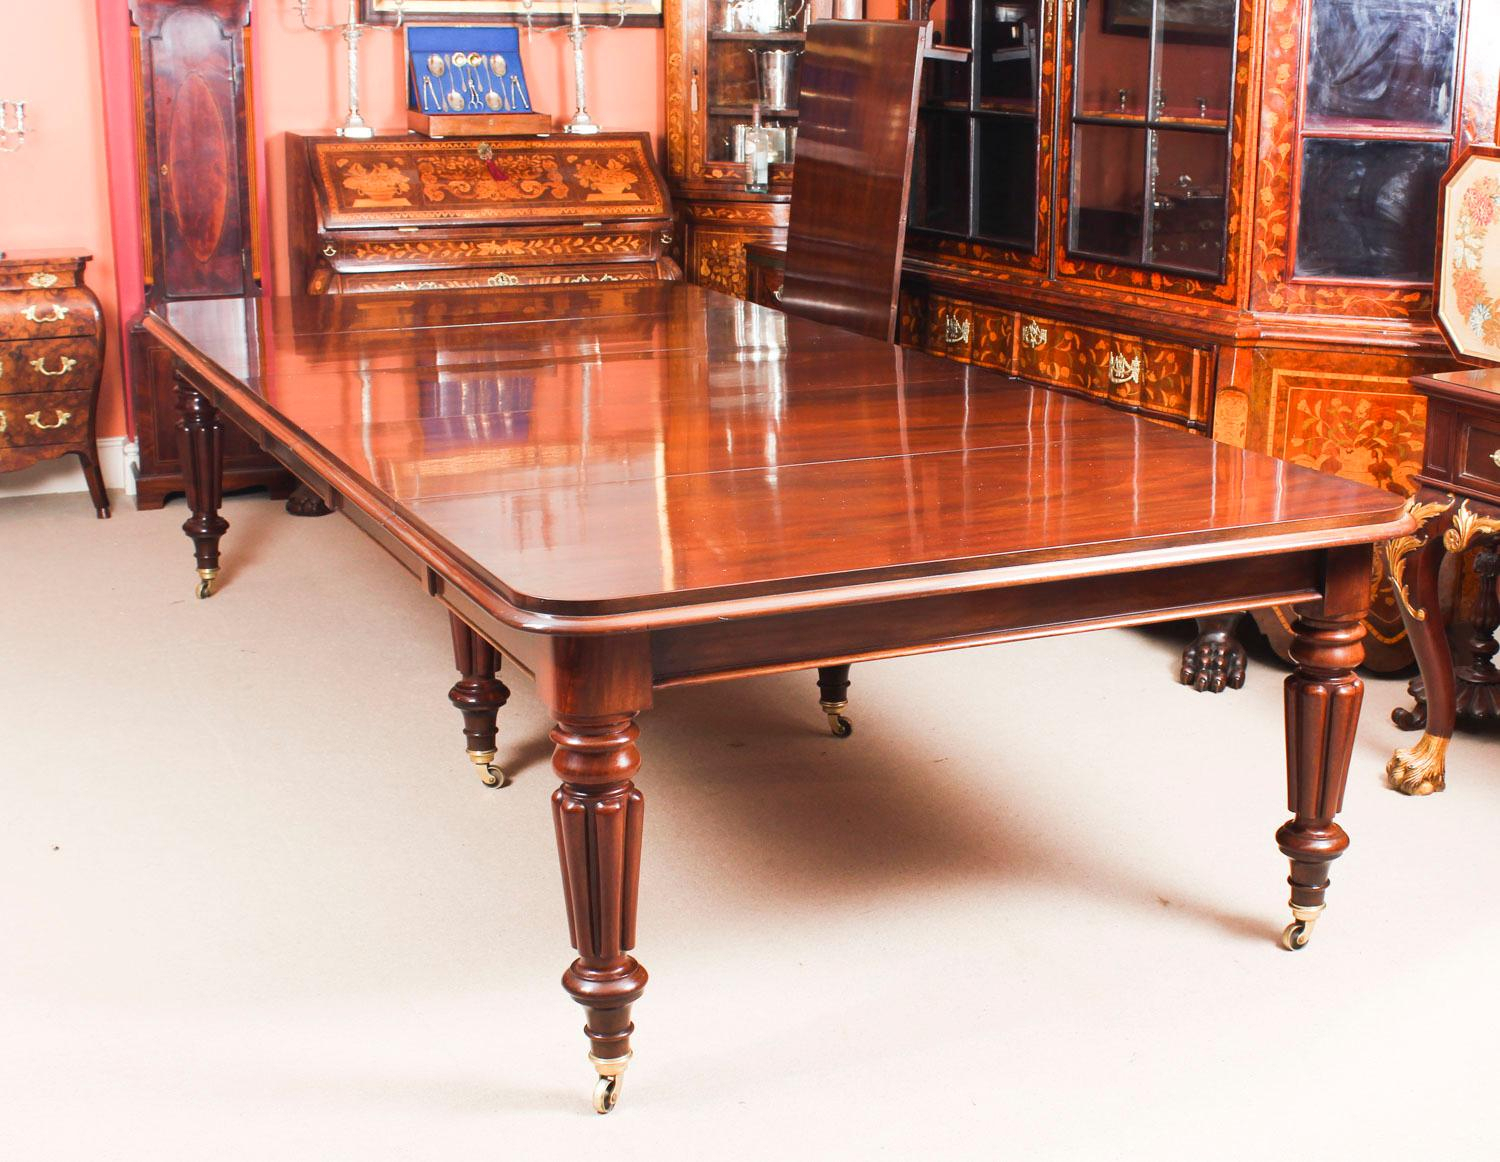 Antique William Iv Mahogany Extending Dining Table, 19Th Century Inside 2017 Rustic Mahogany Extending Dining Tables (View 20 of 25)